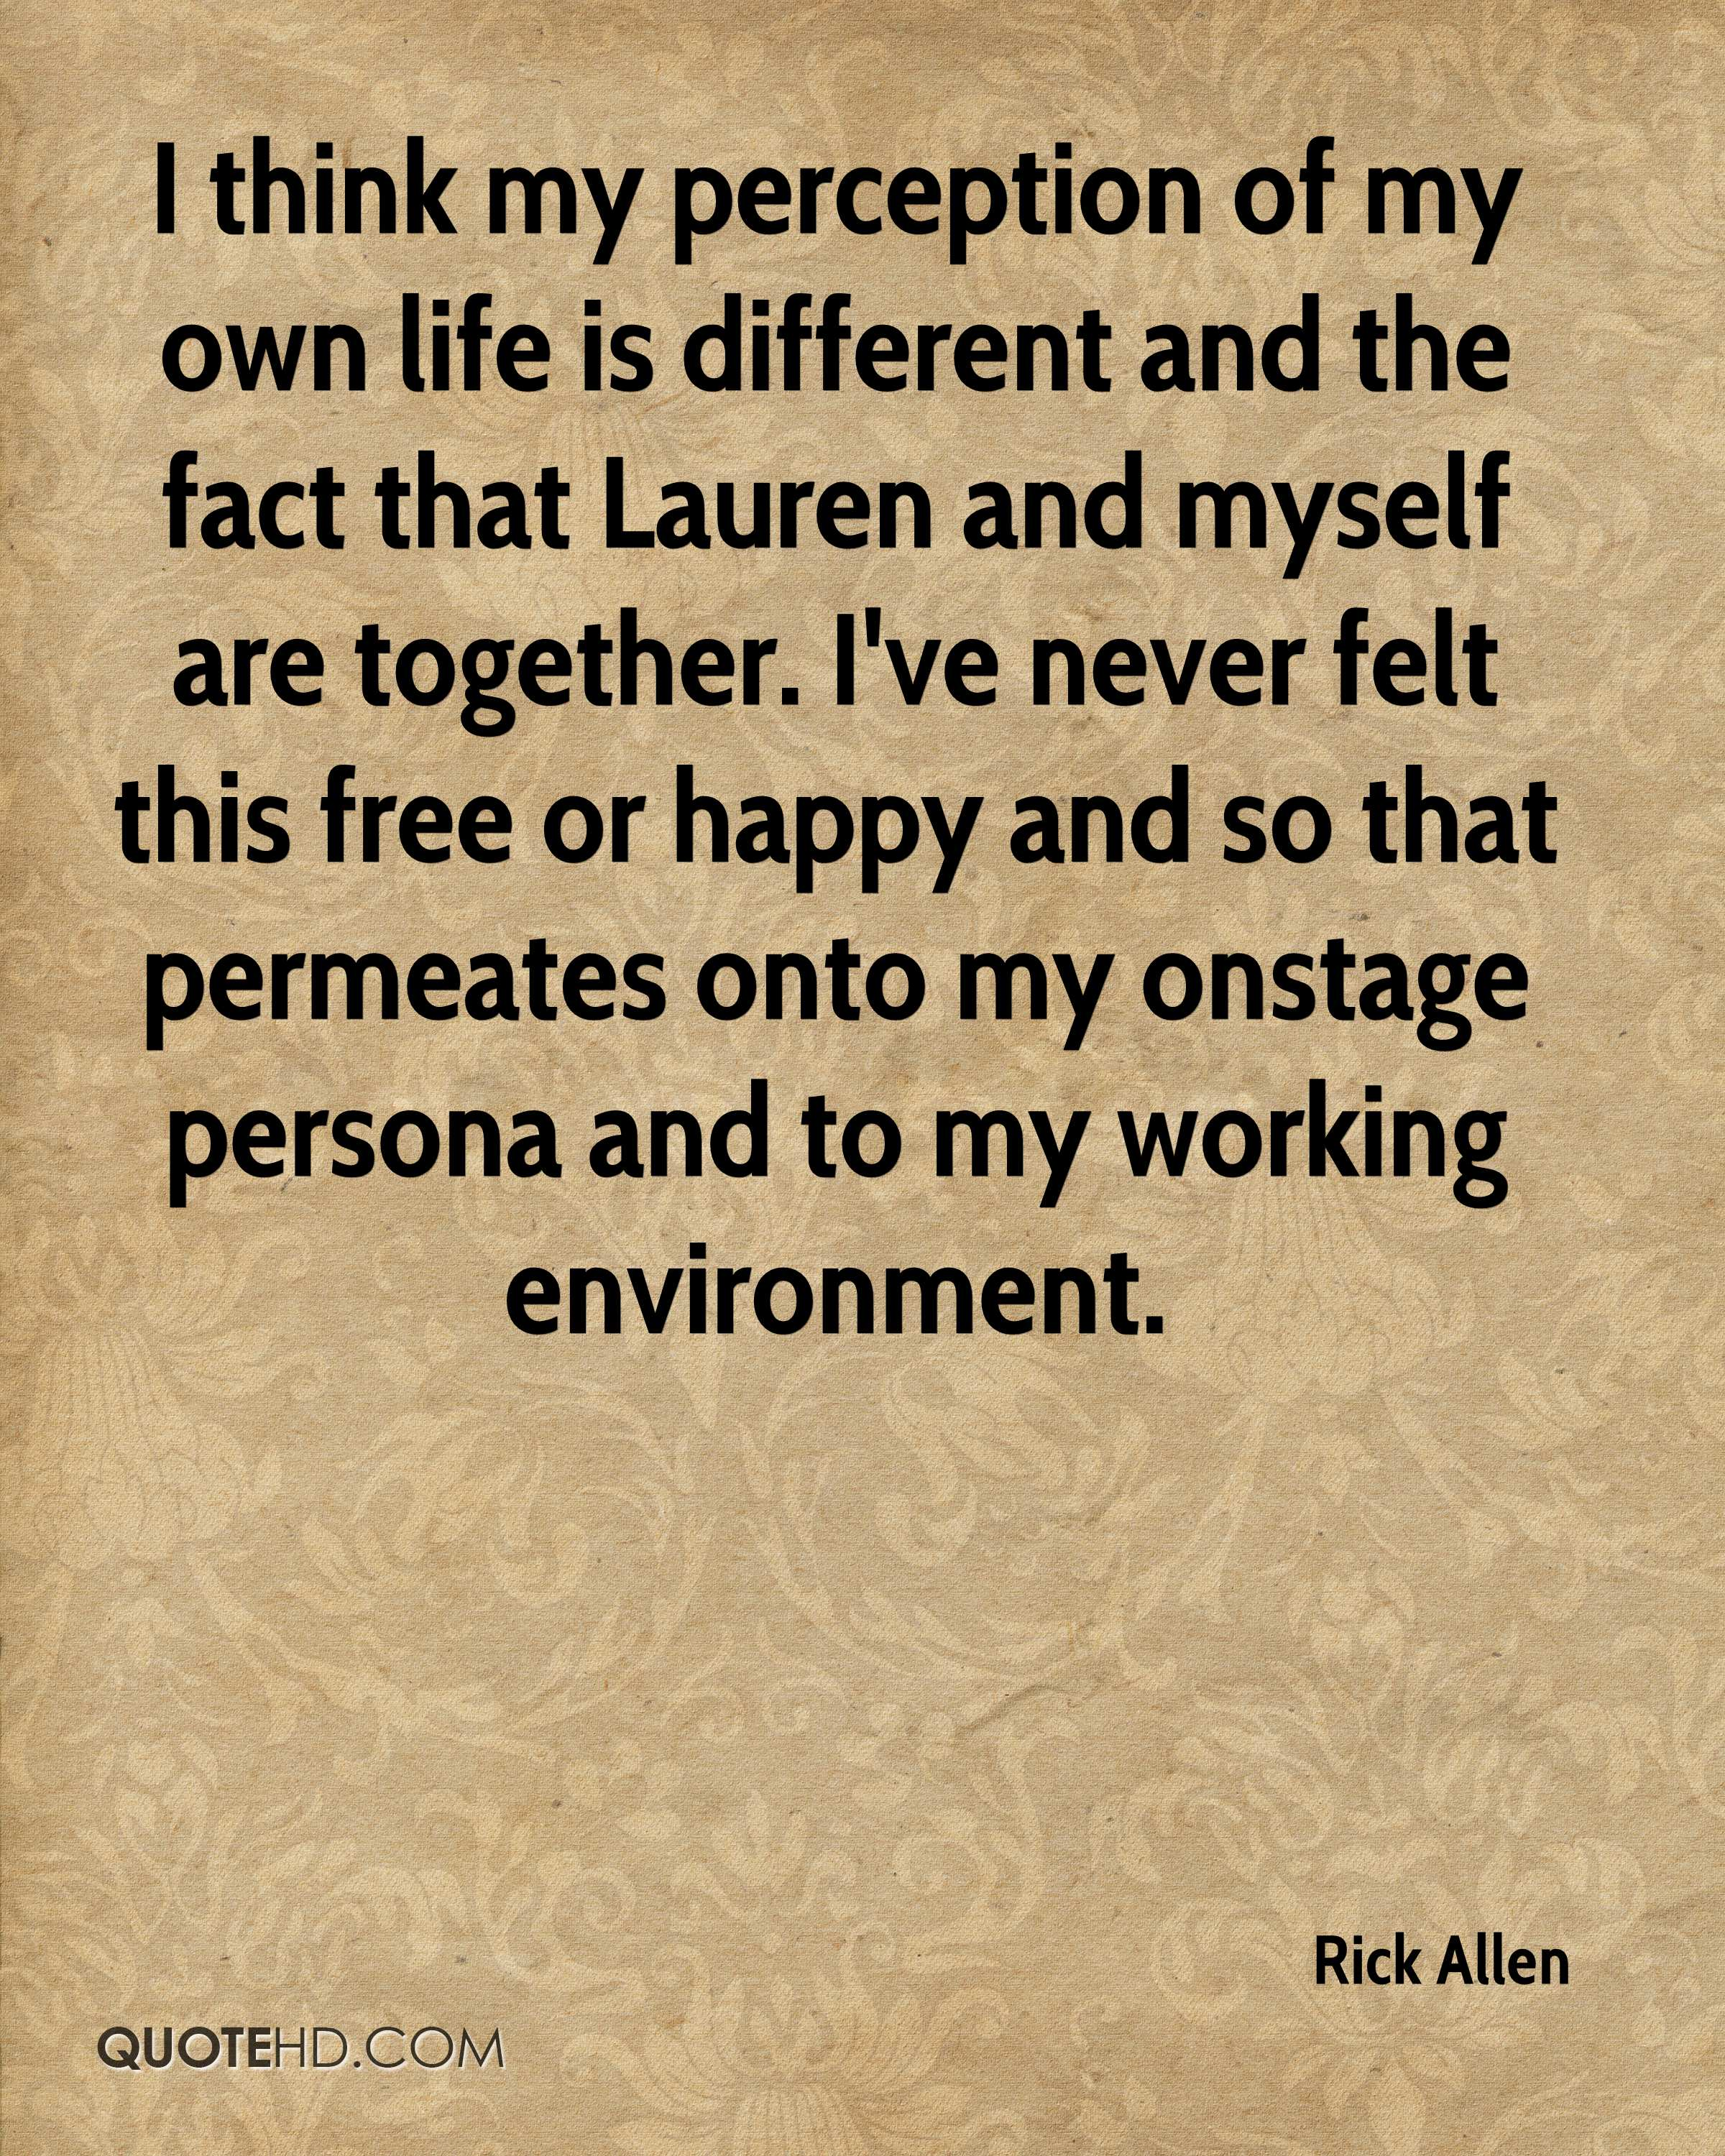 I think my perception of my own life is different and the fact that Lauren and myself are together. I've never felt this free or happy and so that permeates onto my onstage persona and to my working environment.